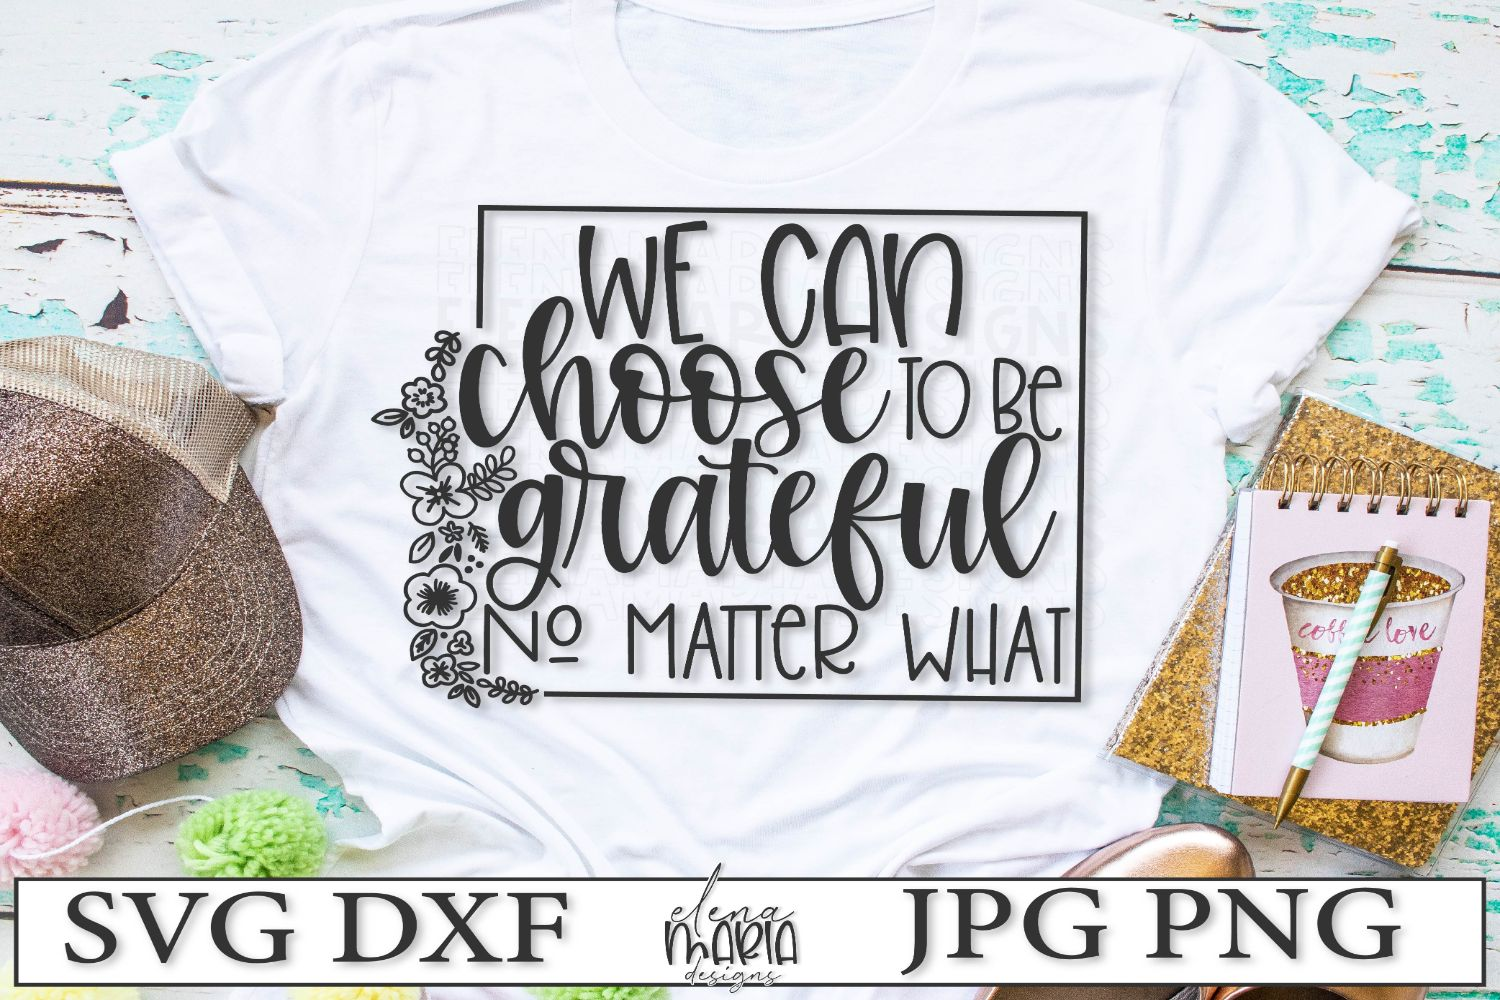 We Can Choose To Be Grateful No Matter What SVG example image 2